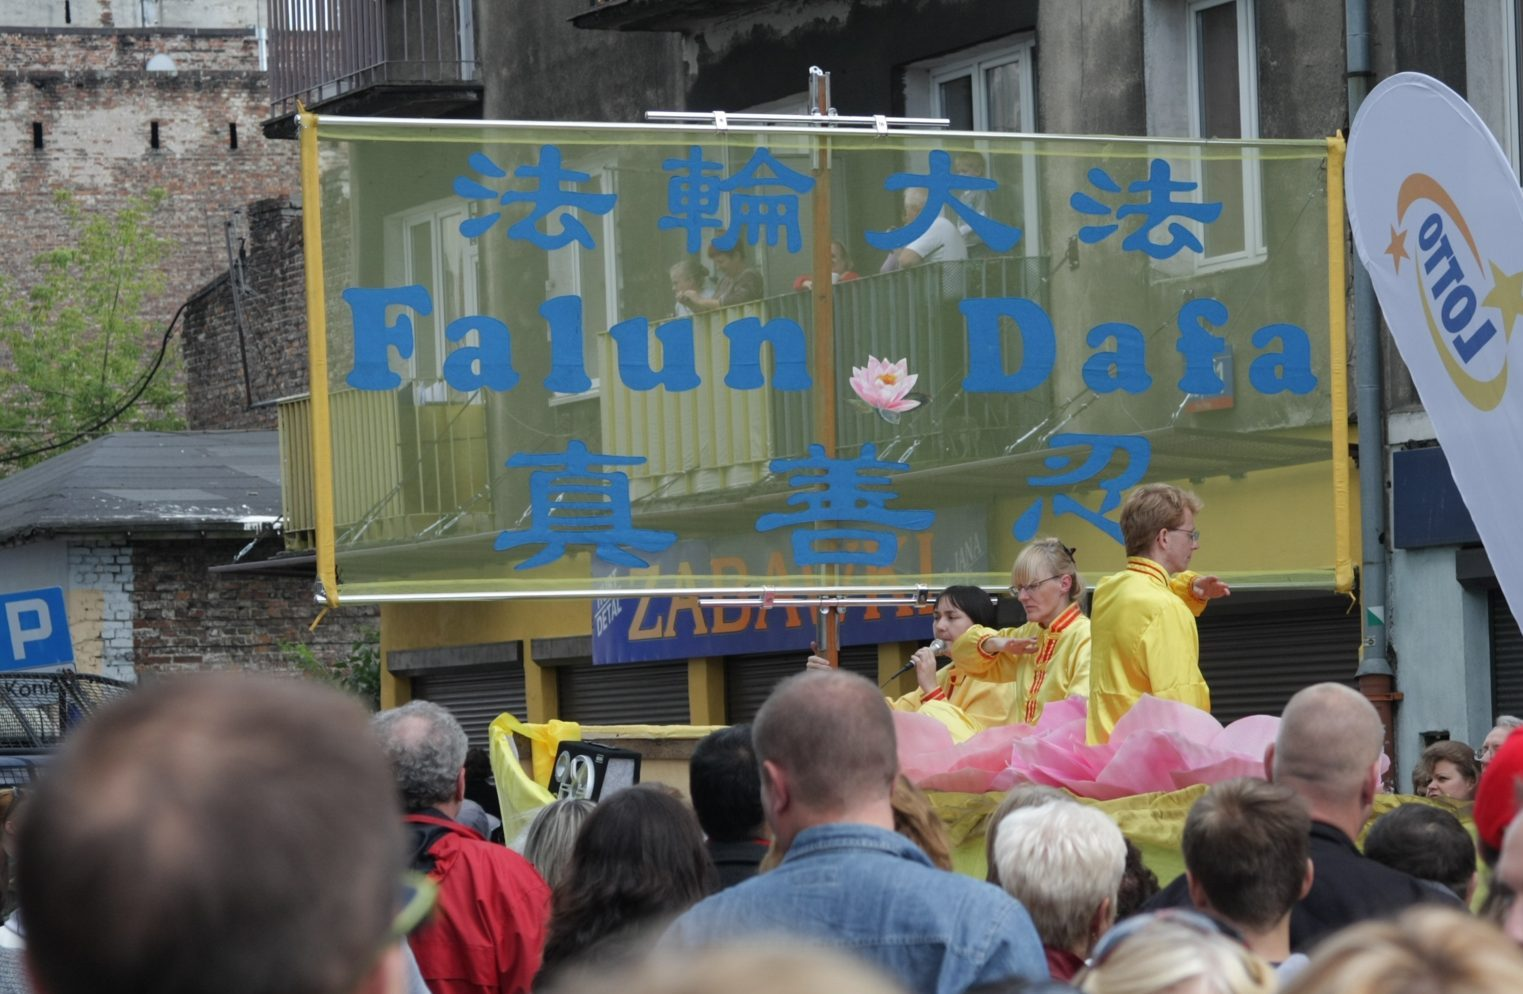 thesis and falun gong Falun gong organs fueled the massive growth of hospitals and dedicated transplant centers that did a booming trade in human organs, some of which were sold to foreigners for upward of $100,000.